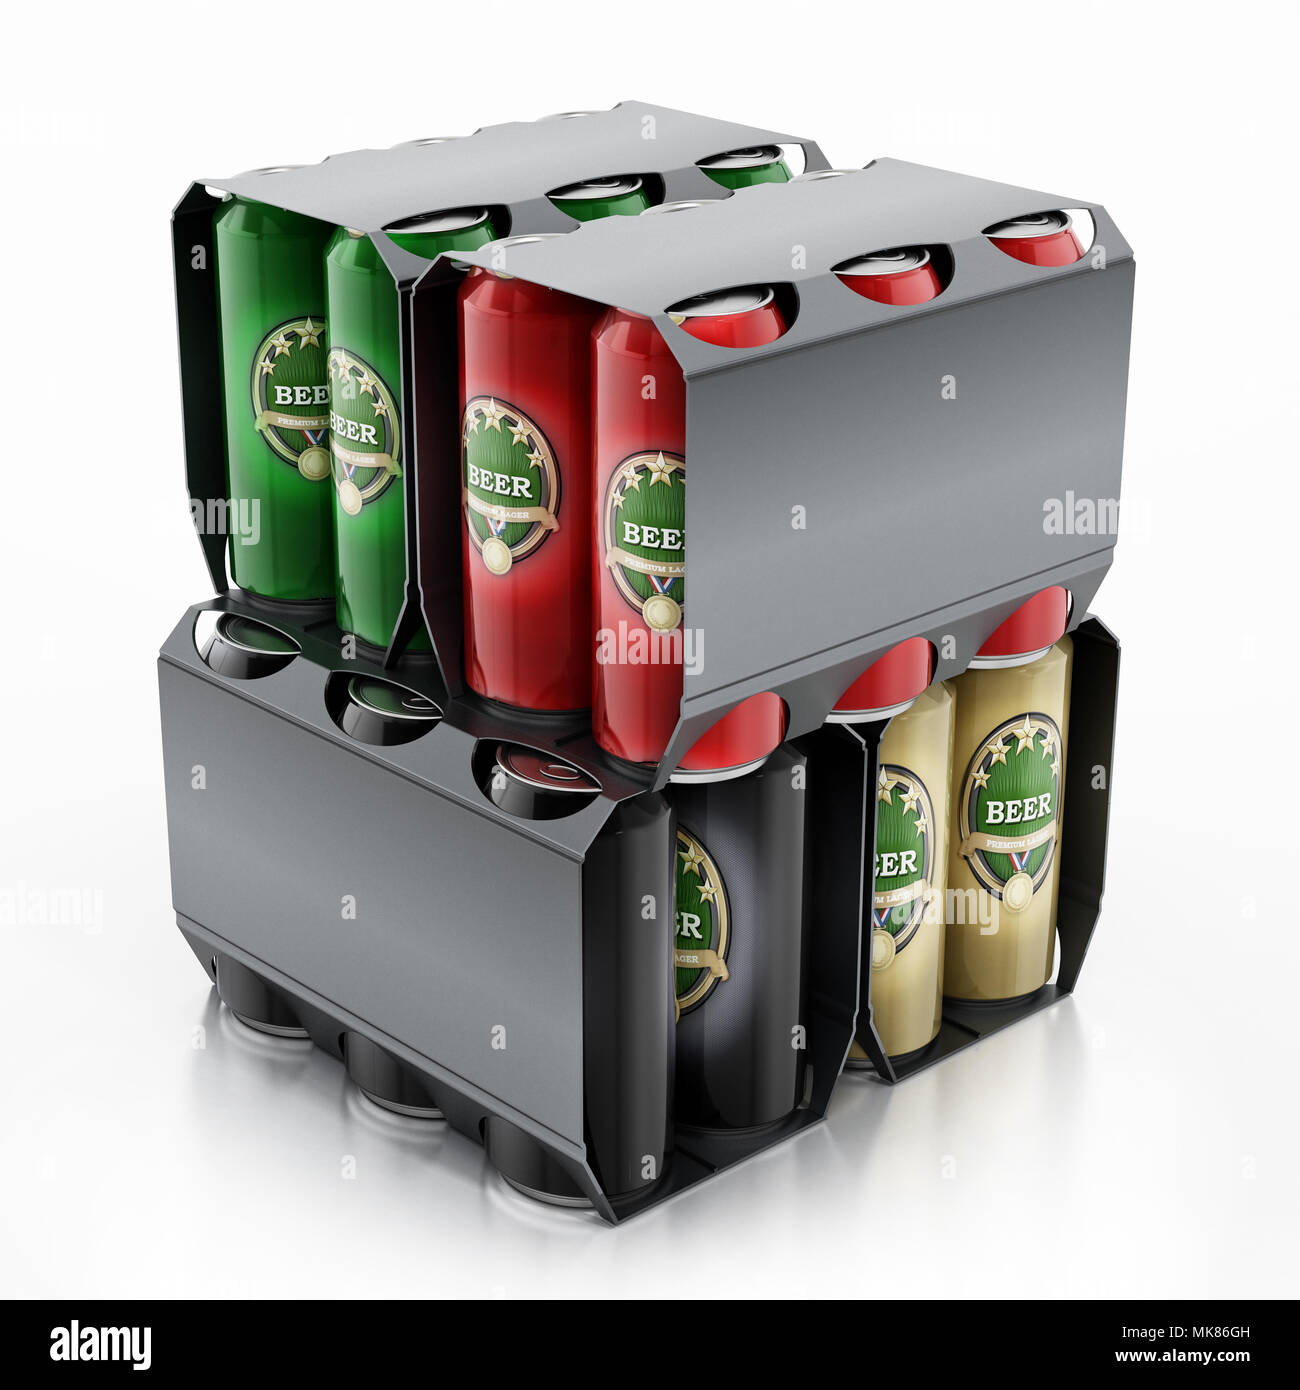 Metal beer cans in a 6 pack package. 3D illustration. Stock Photo